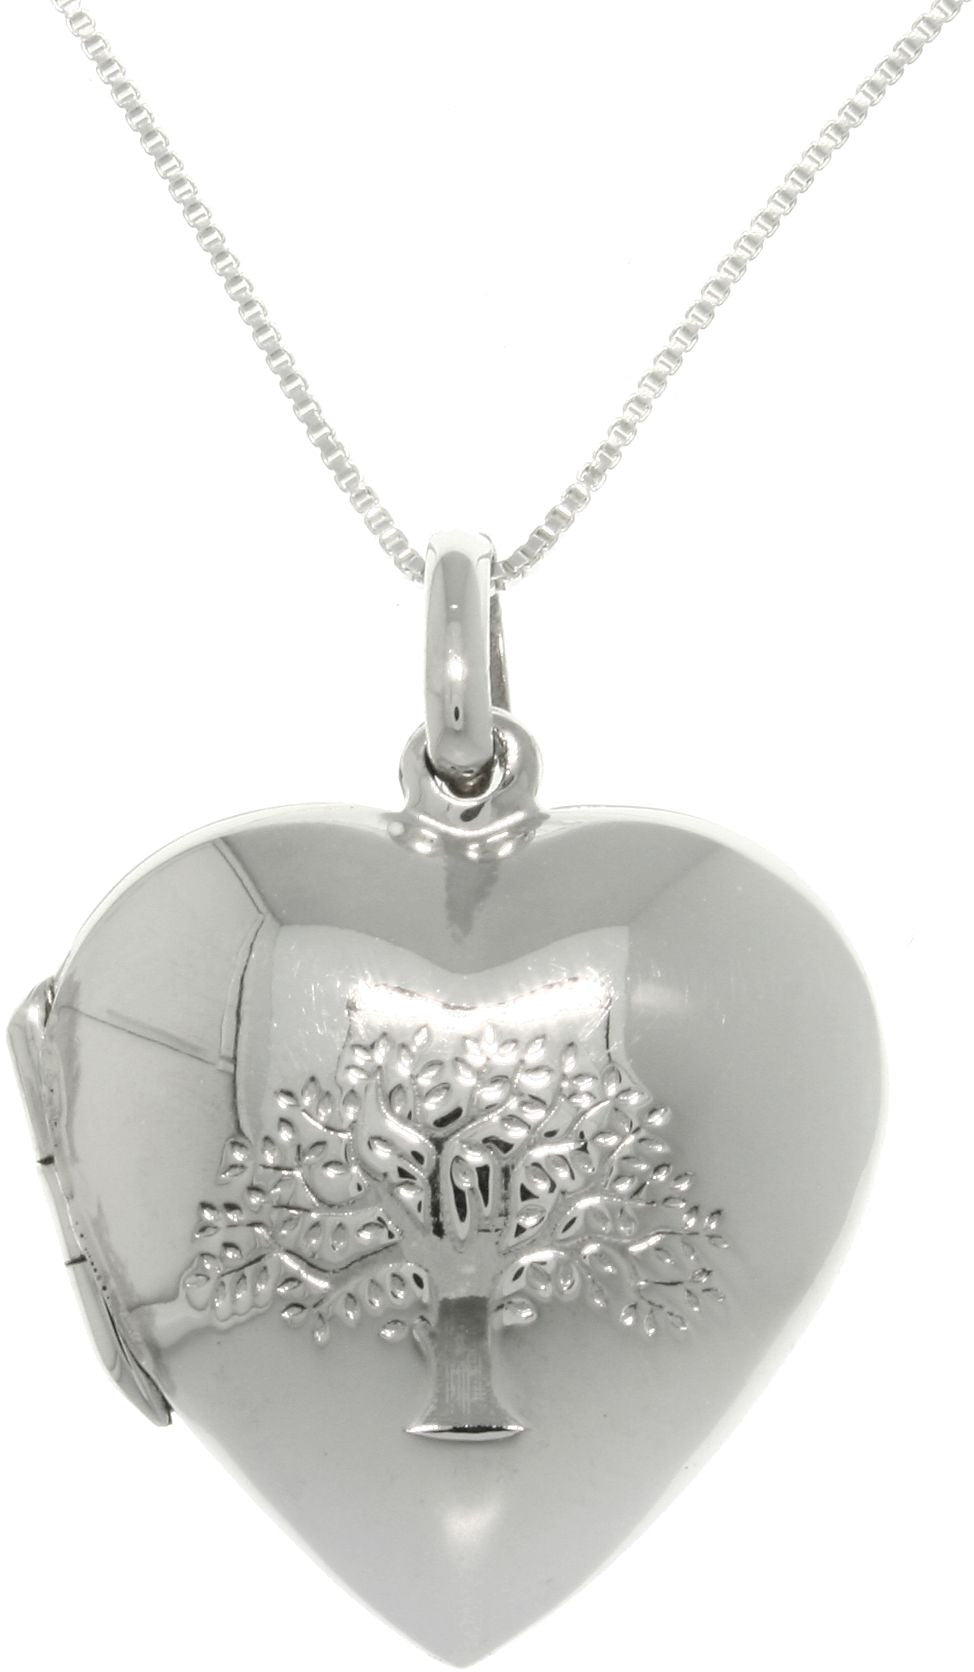 Jewelry Trends Sterling Silver Tree of Life Heart Locket Pendant with 18 Inch Chain Necklace